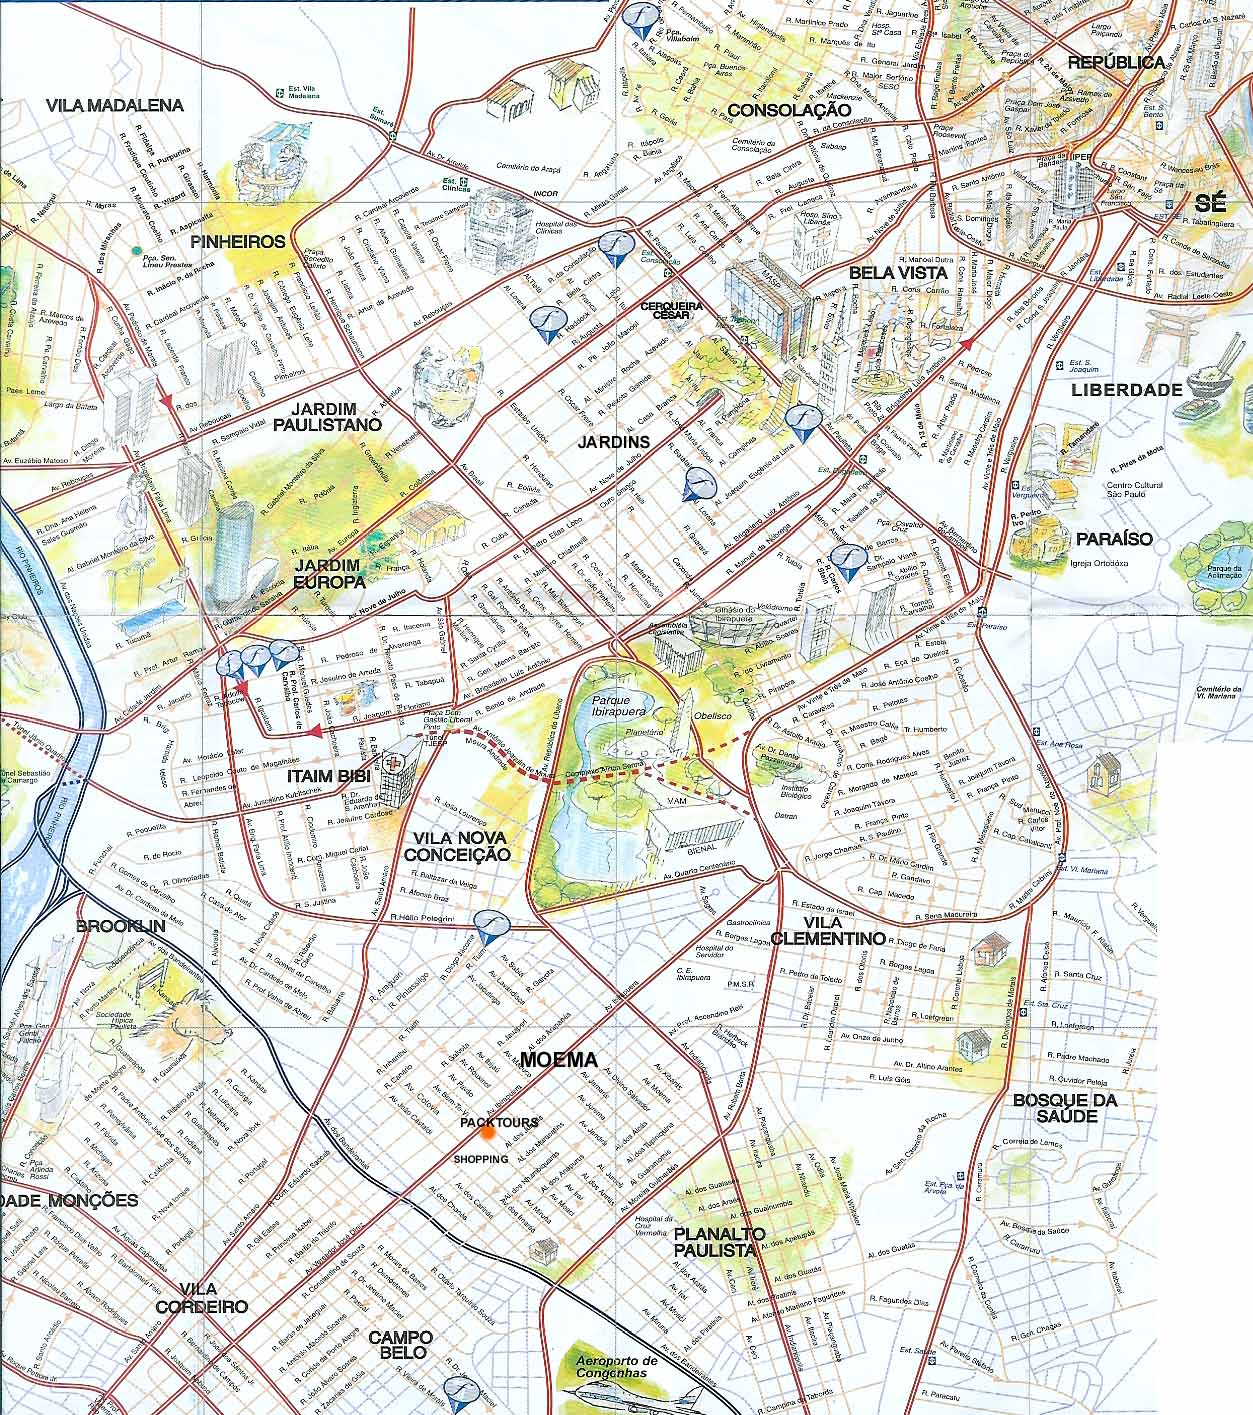 airports paris map with Sao Paulo on Large Detailed Map Of Guatemala With Cities And Towns also Il Y A Trop D Aeroports En France 62131 likewise France Forum Des Halles likewise Sao paulo further 12460267864.